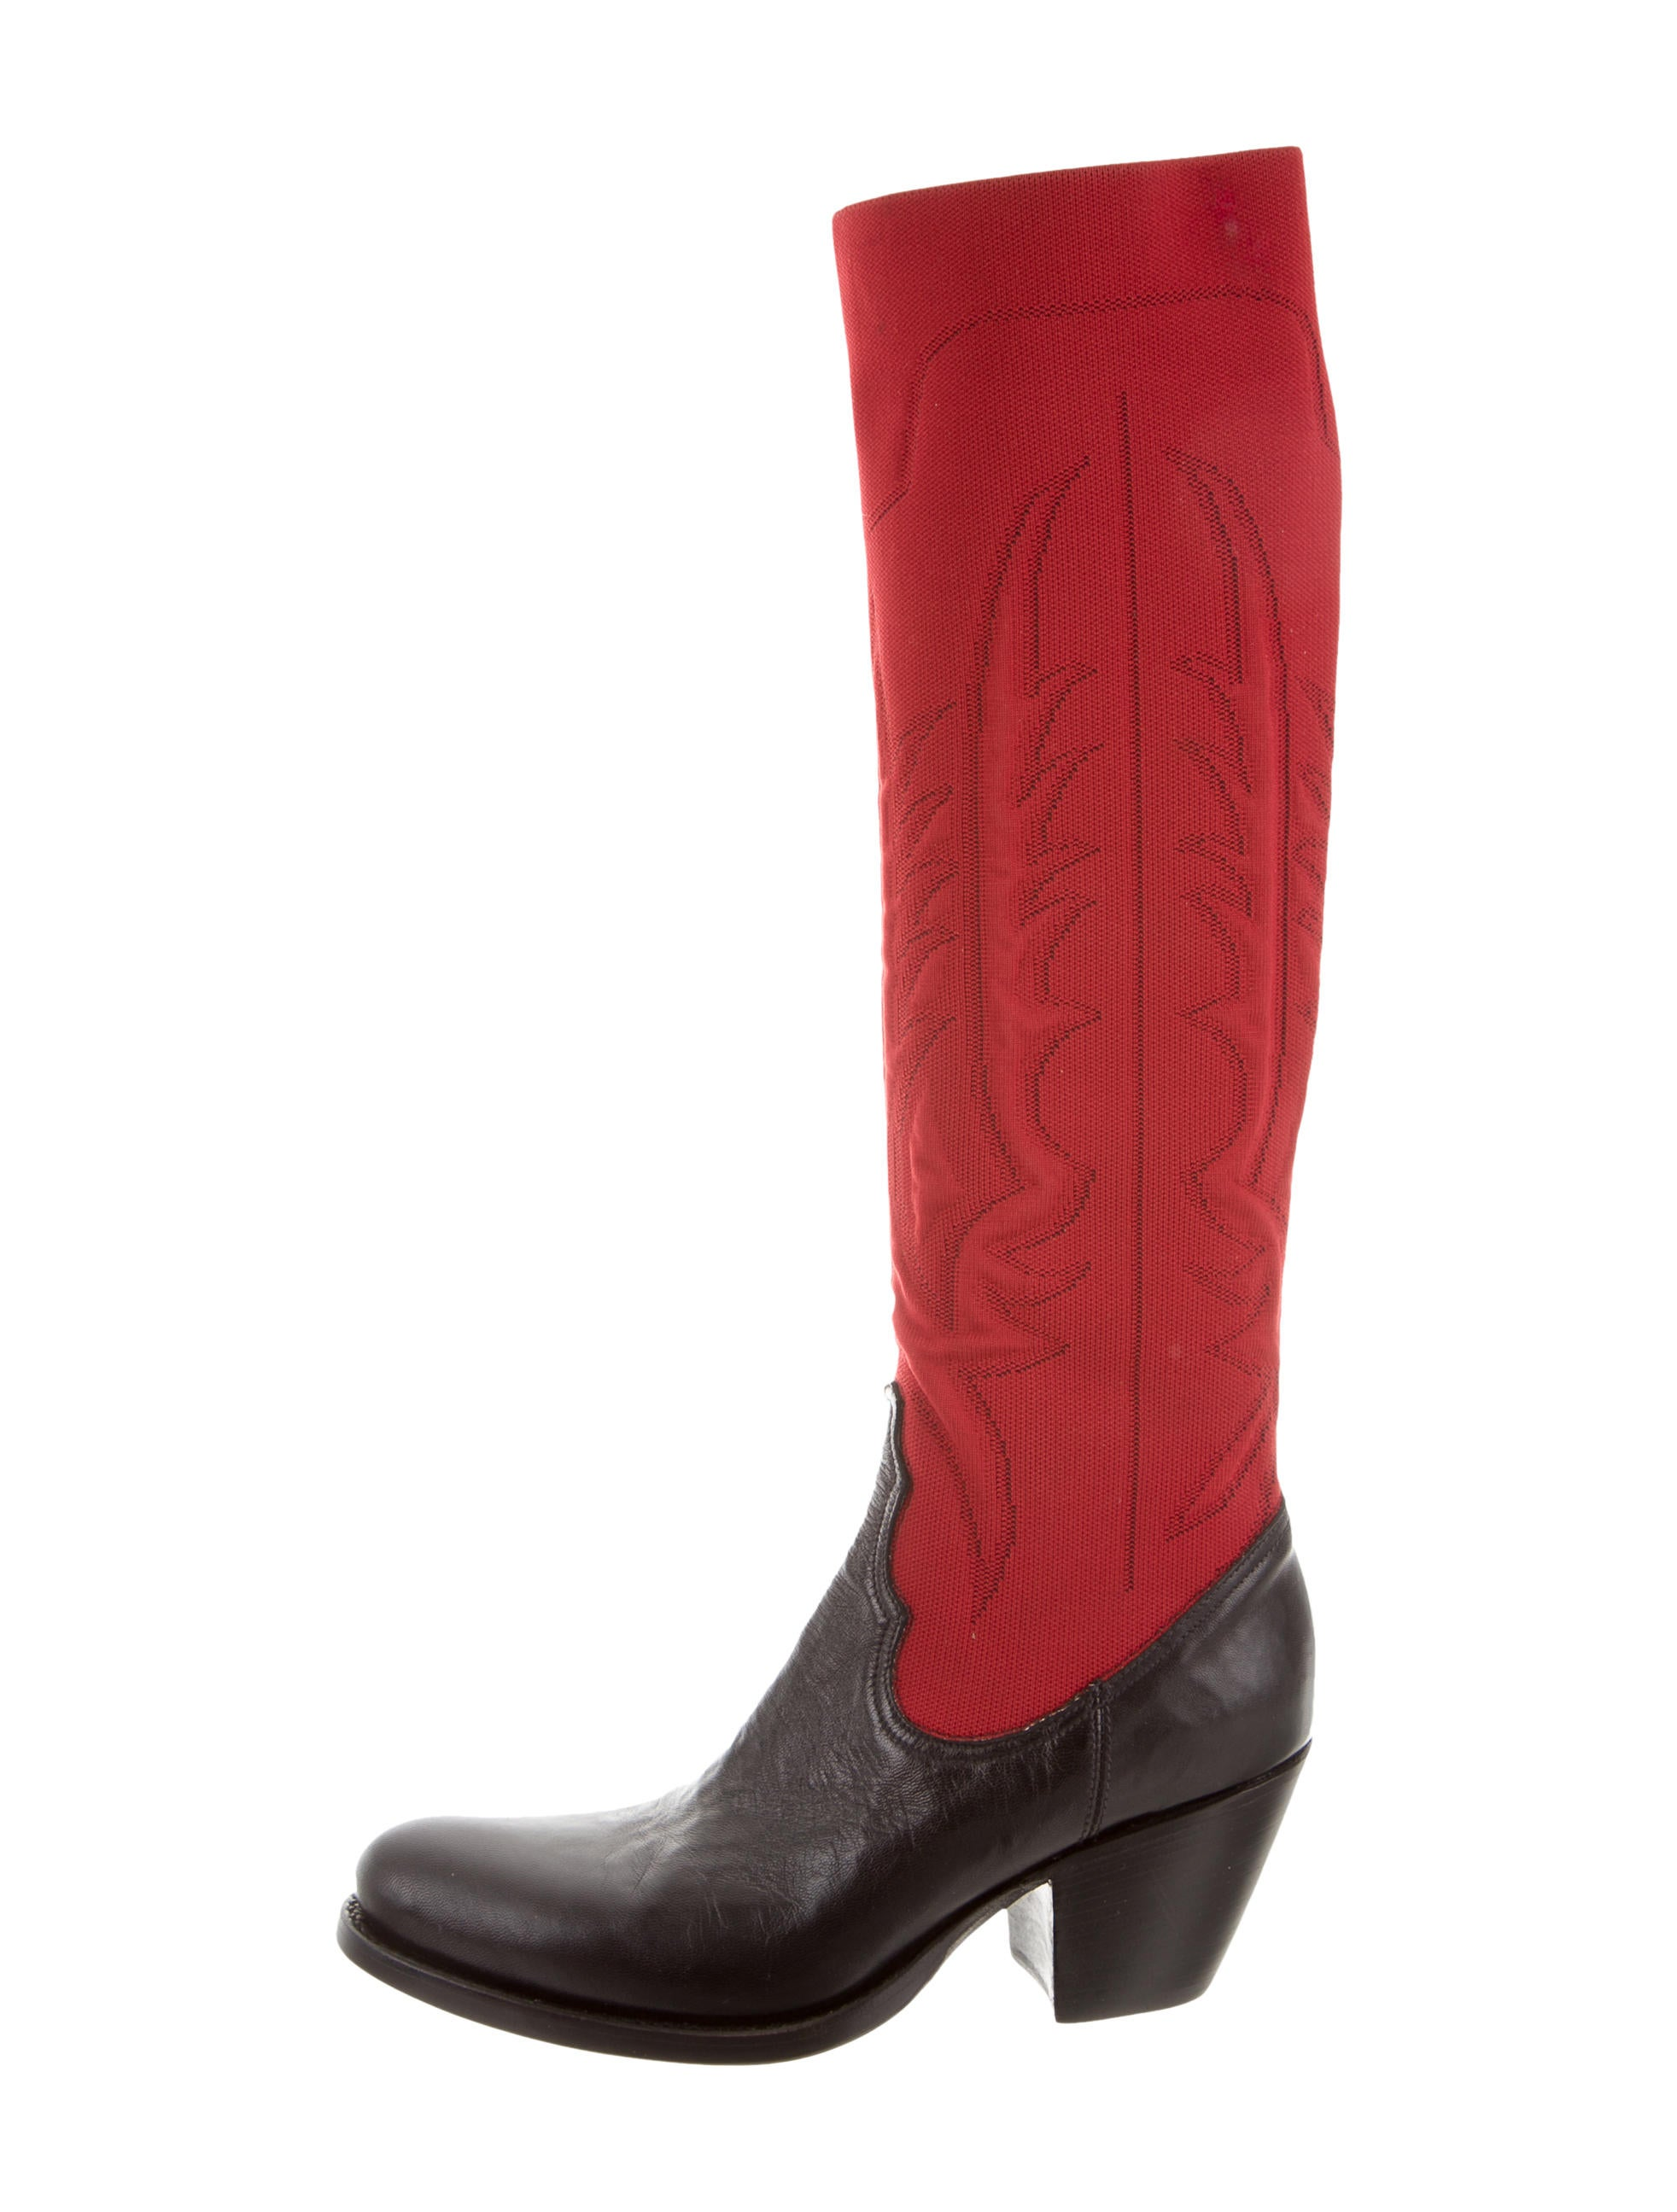 buy cheap with mastercard Rocco P. Embroidered Knee-High Boots w/ Tags for cheap WApIX